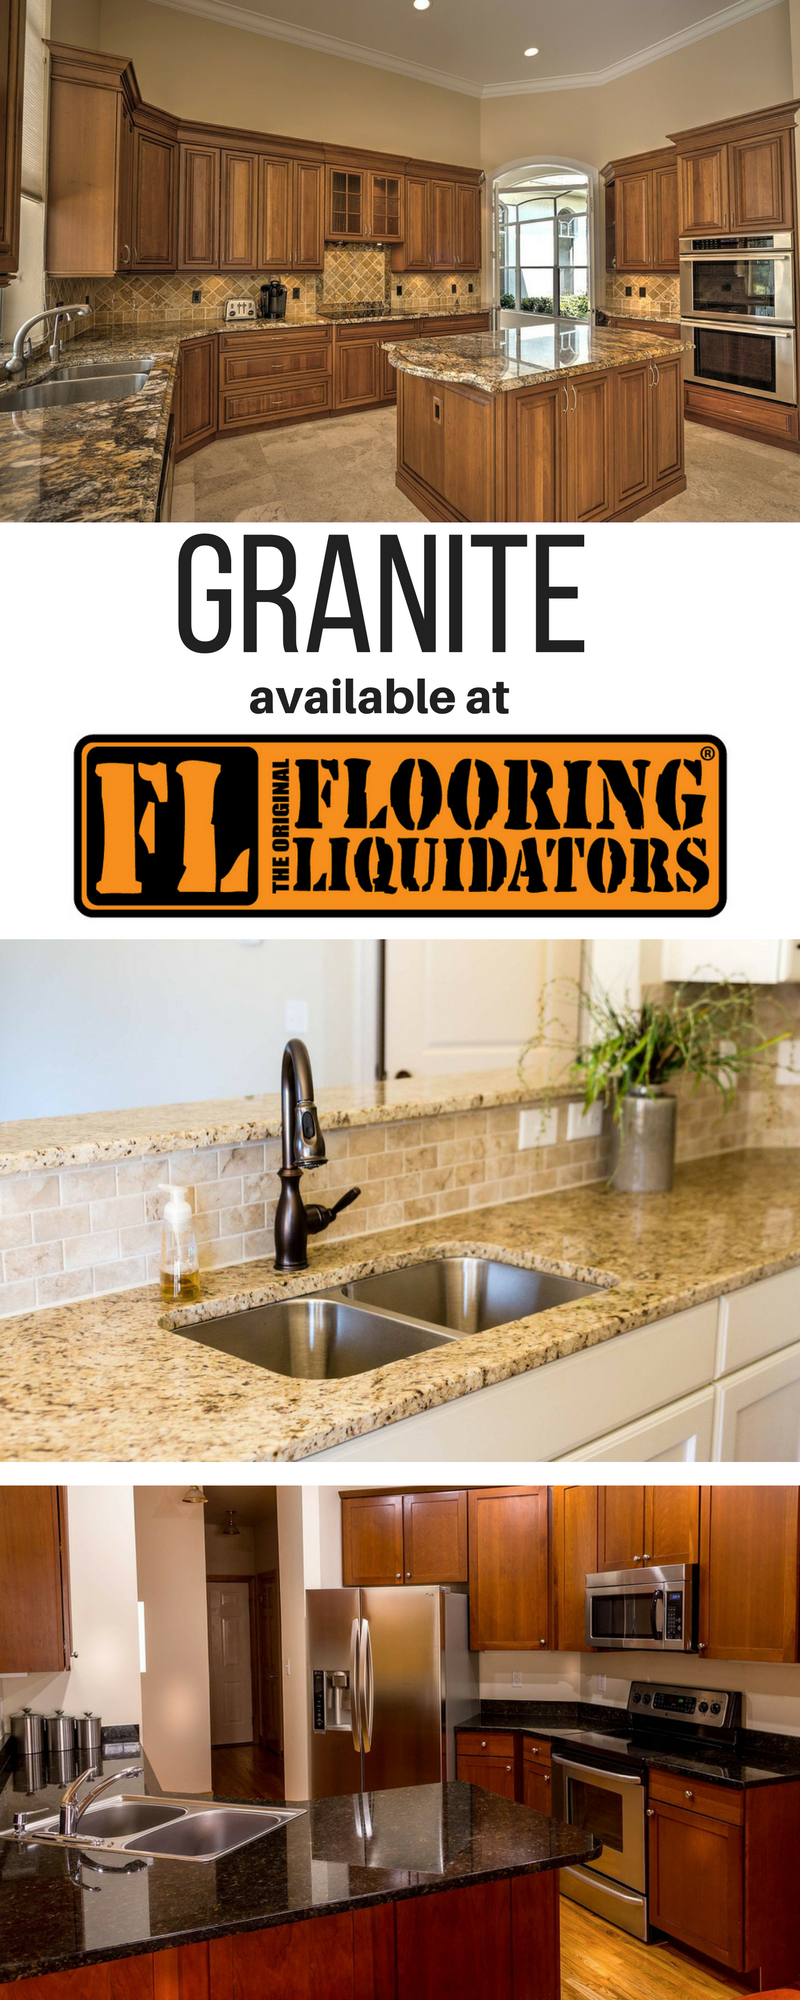 Granite is available at Flooring Liquidators! Make your